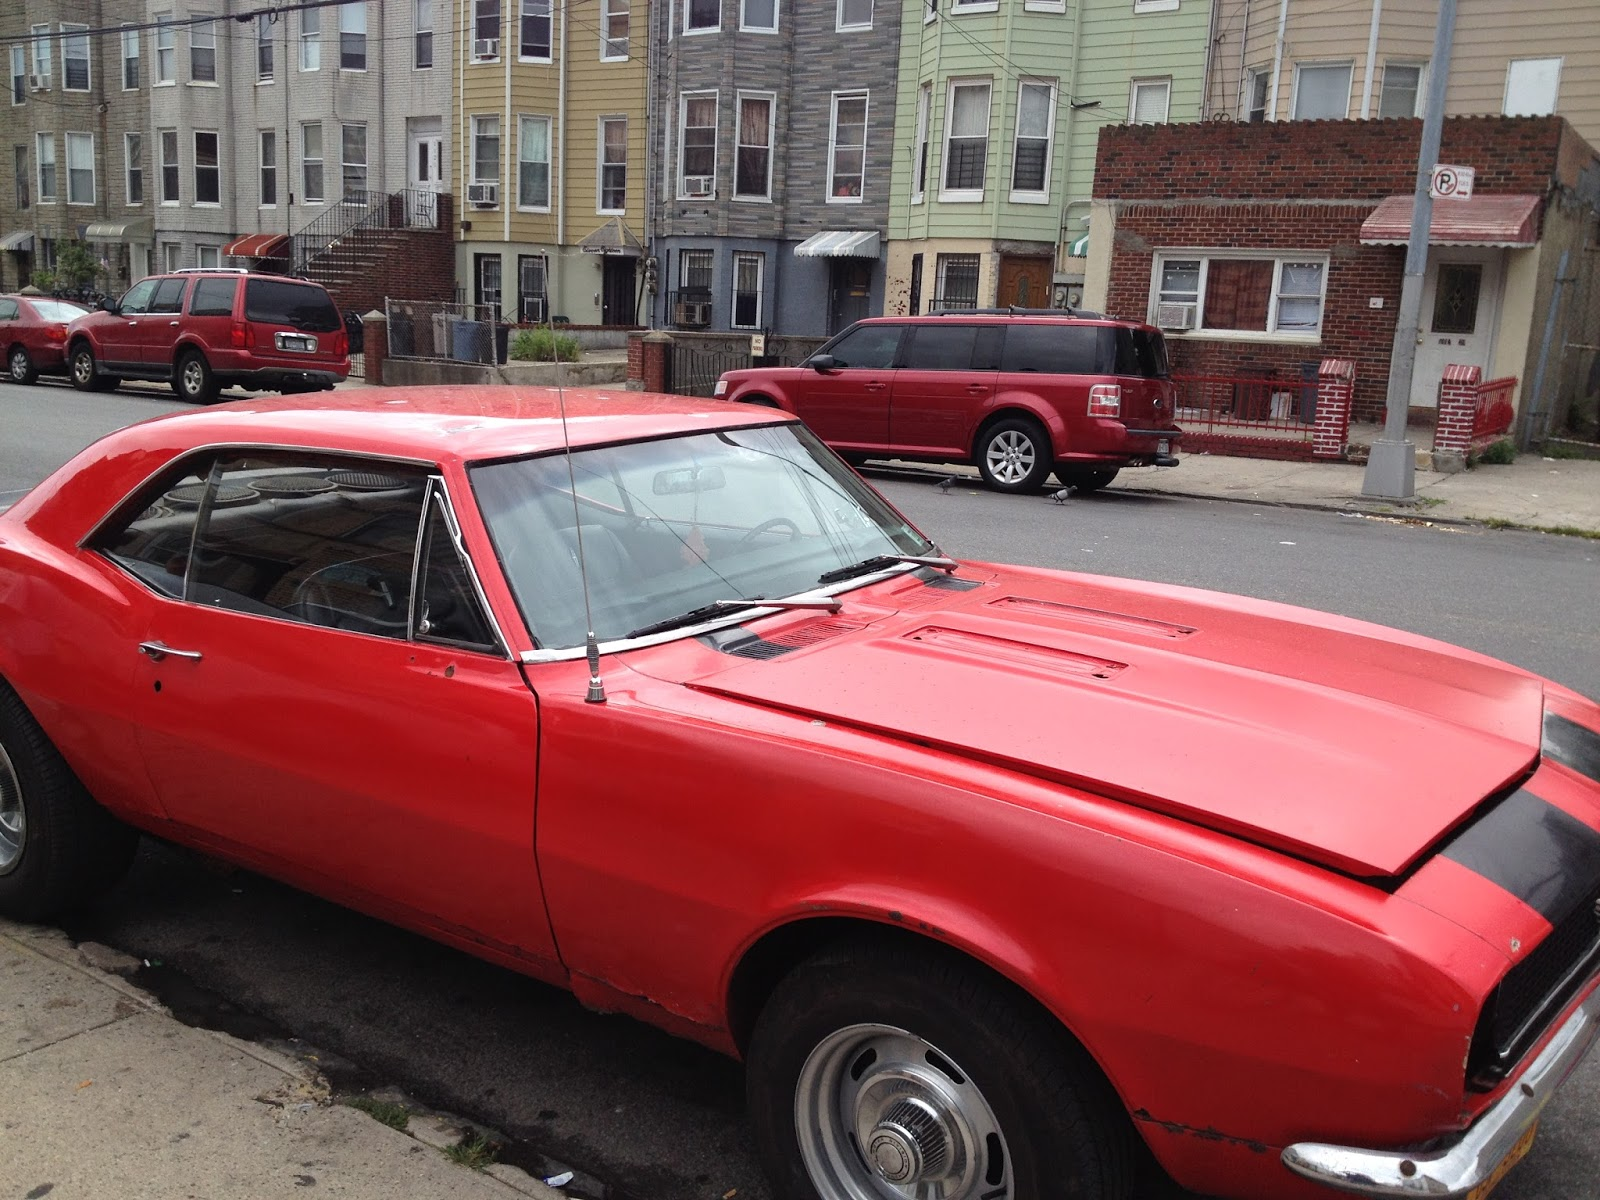 NYC Hoopties - Whips Rides Buckets Junkers and Clunkers: September 2016